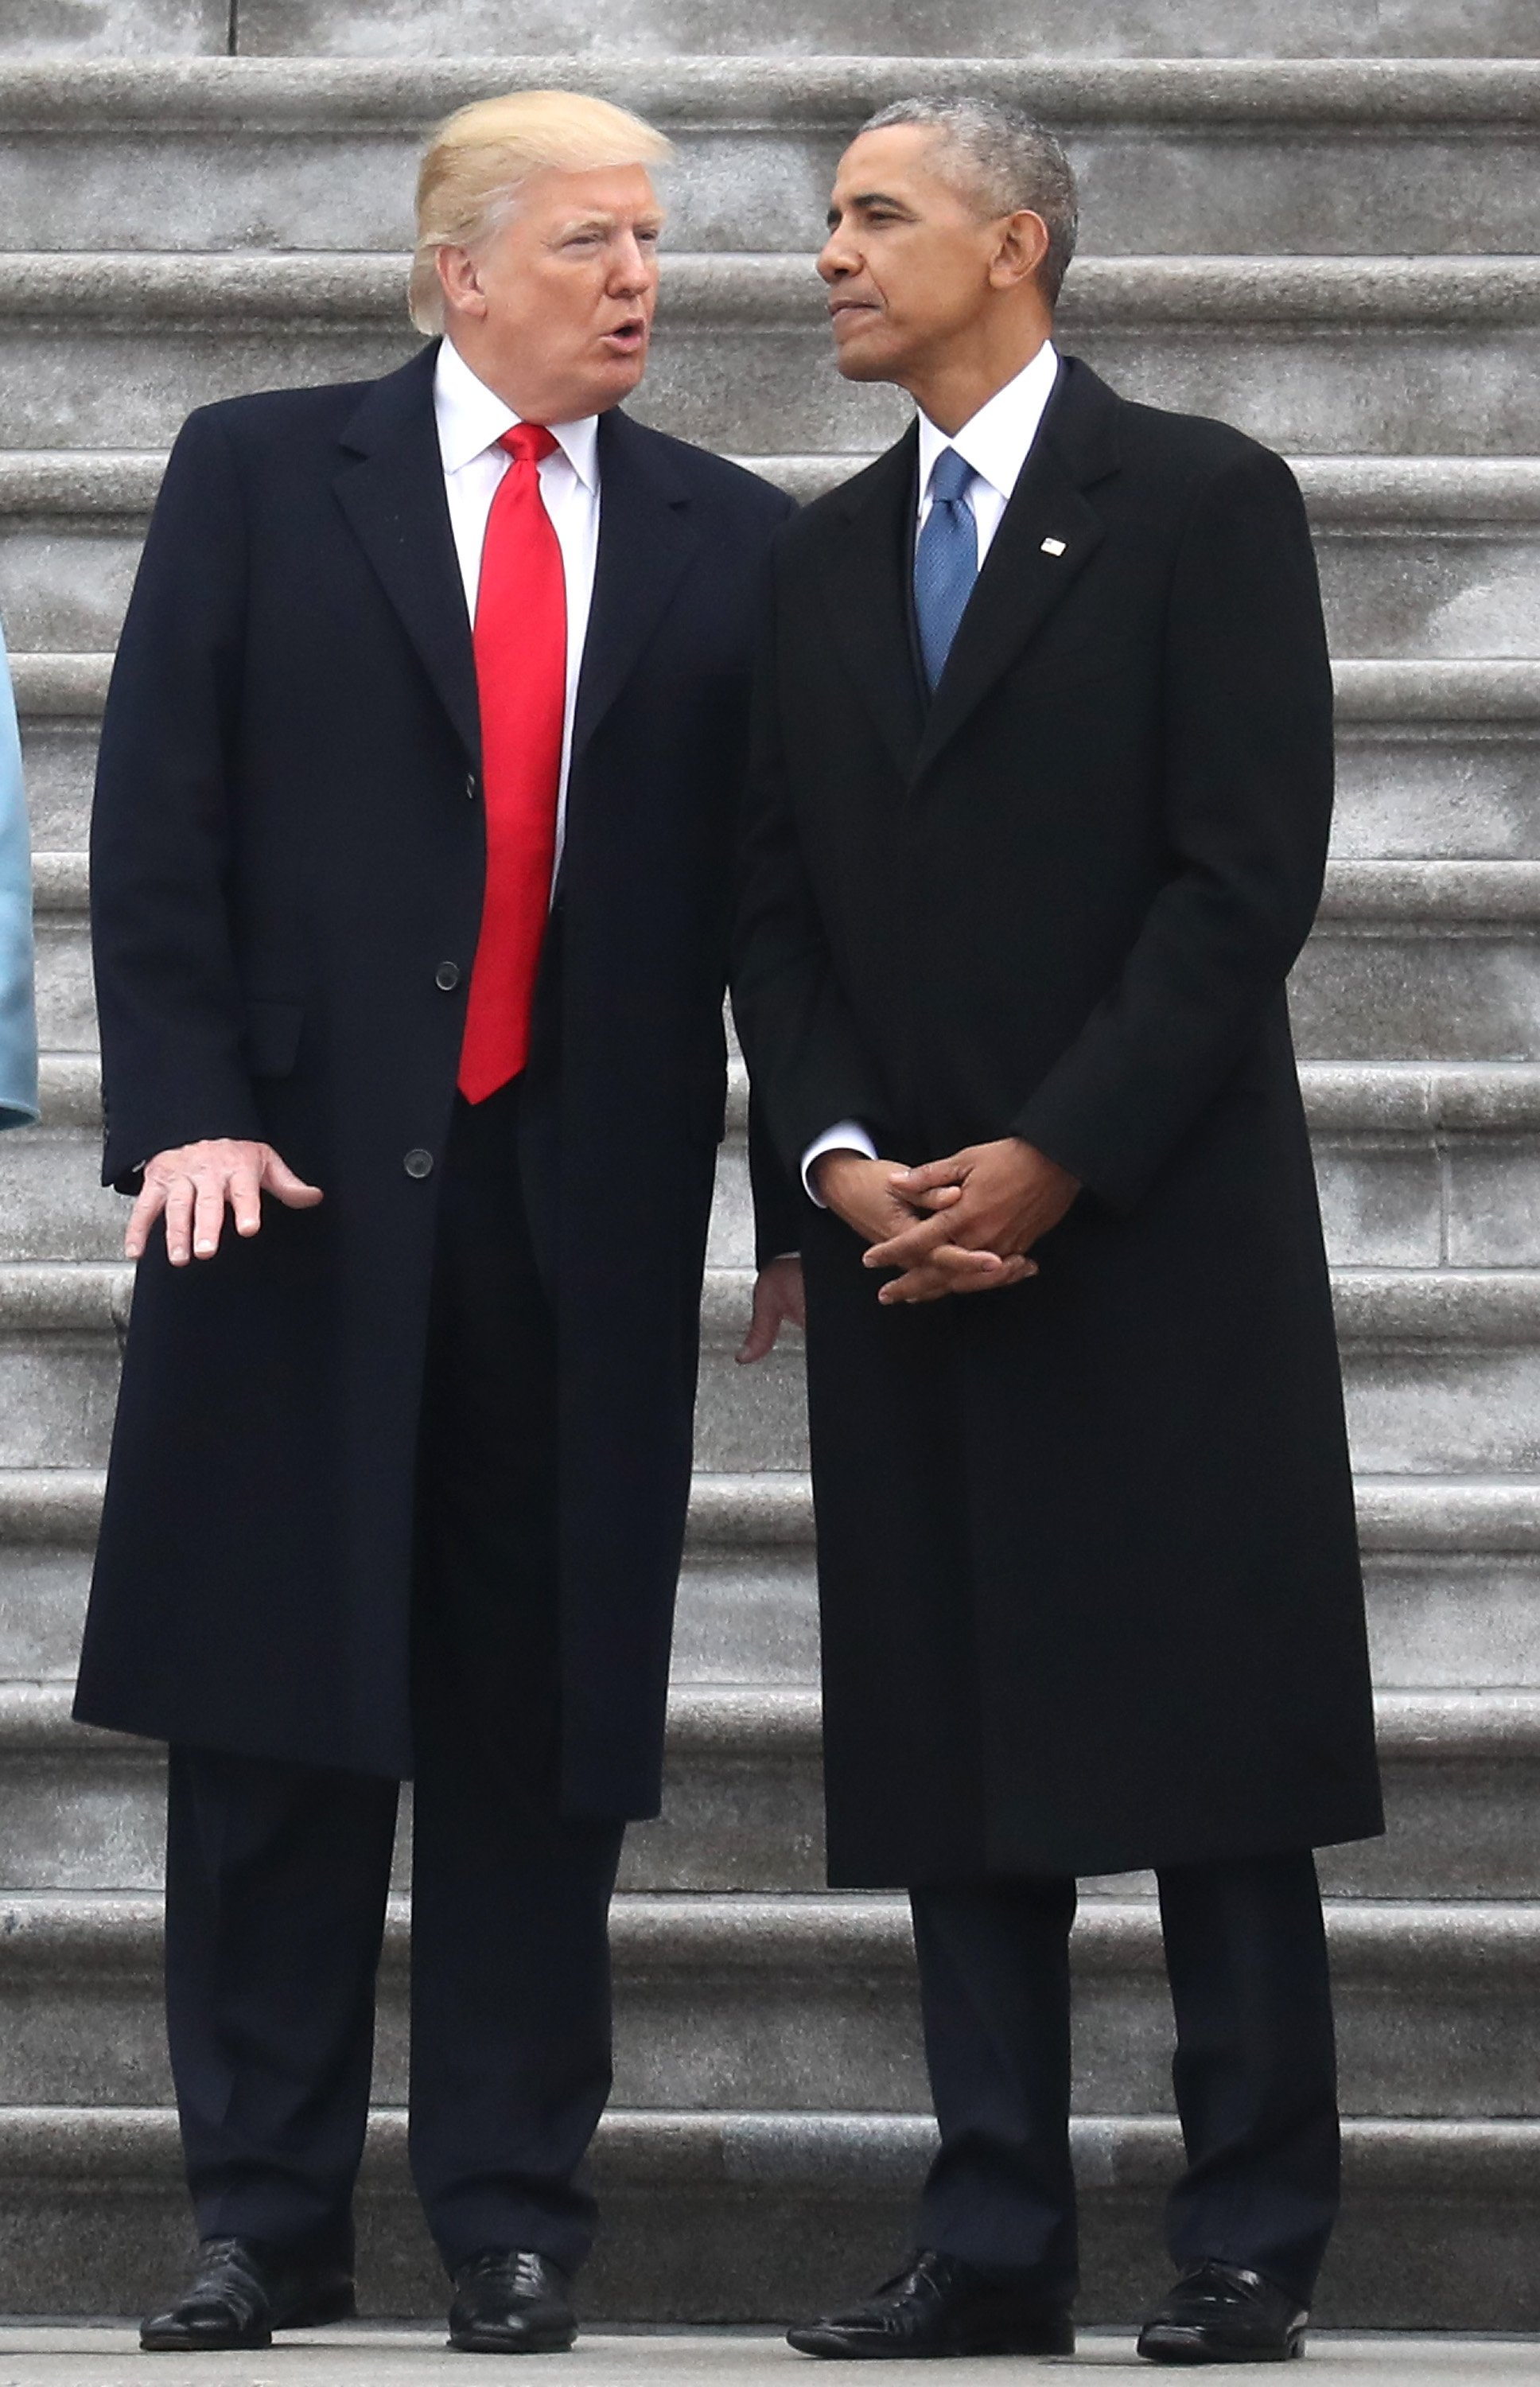 Donald J. Trump and Barack Obama. | Source: Getty Images